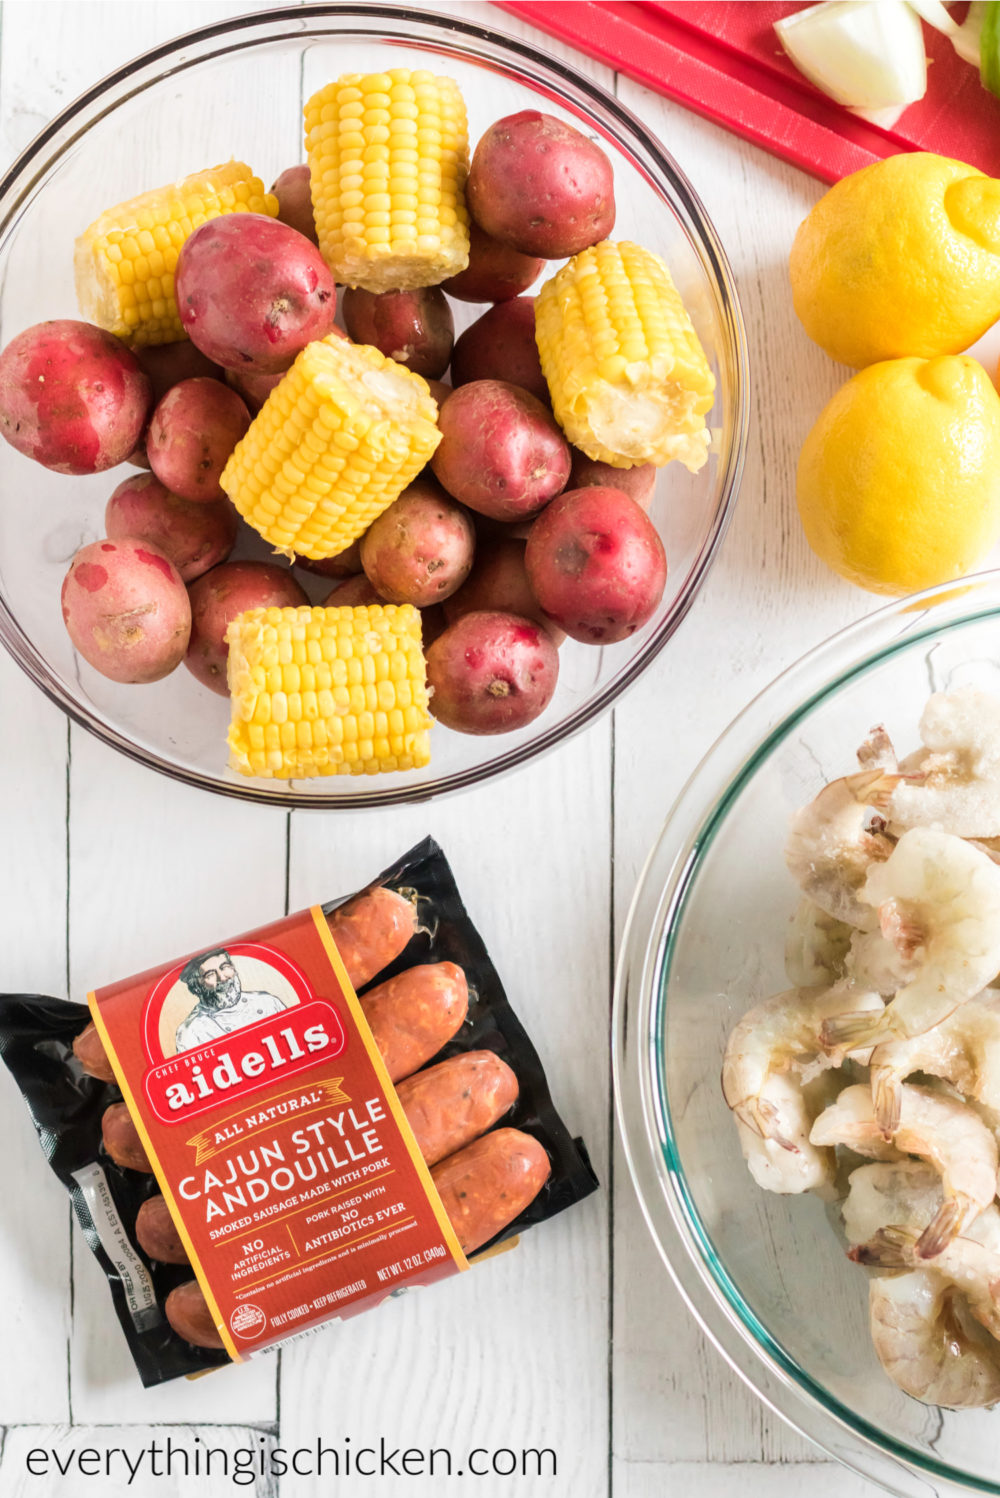 Ingredients needed for a cajun seafood boil.